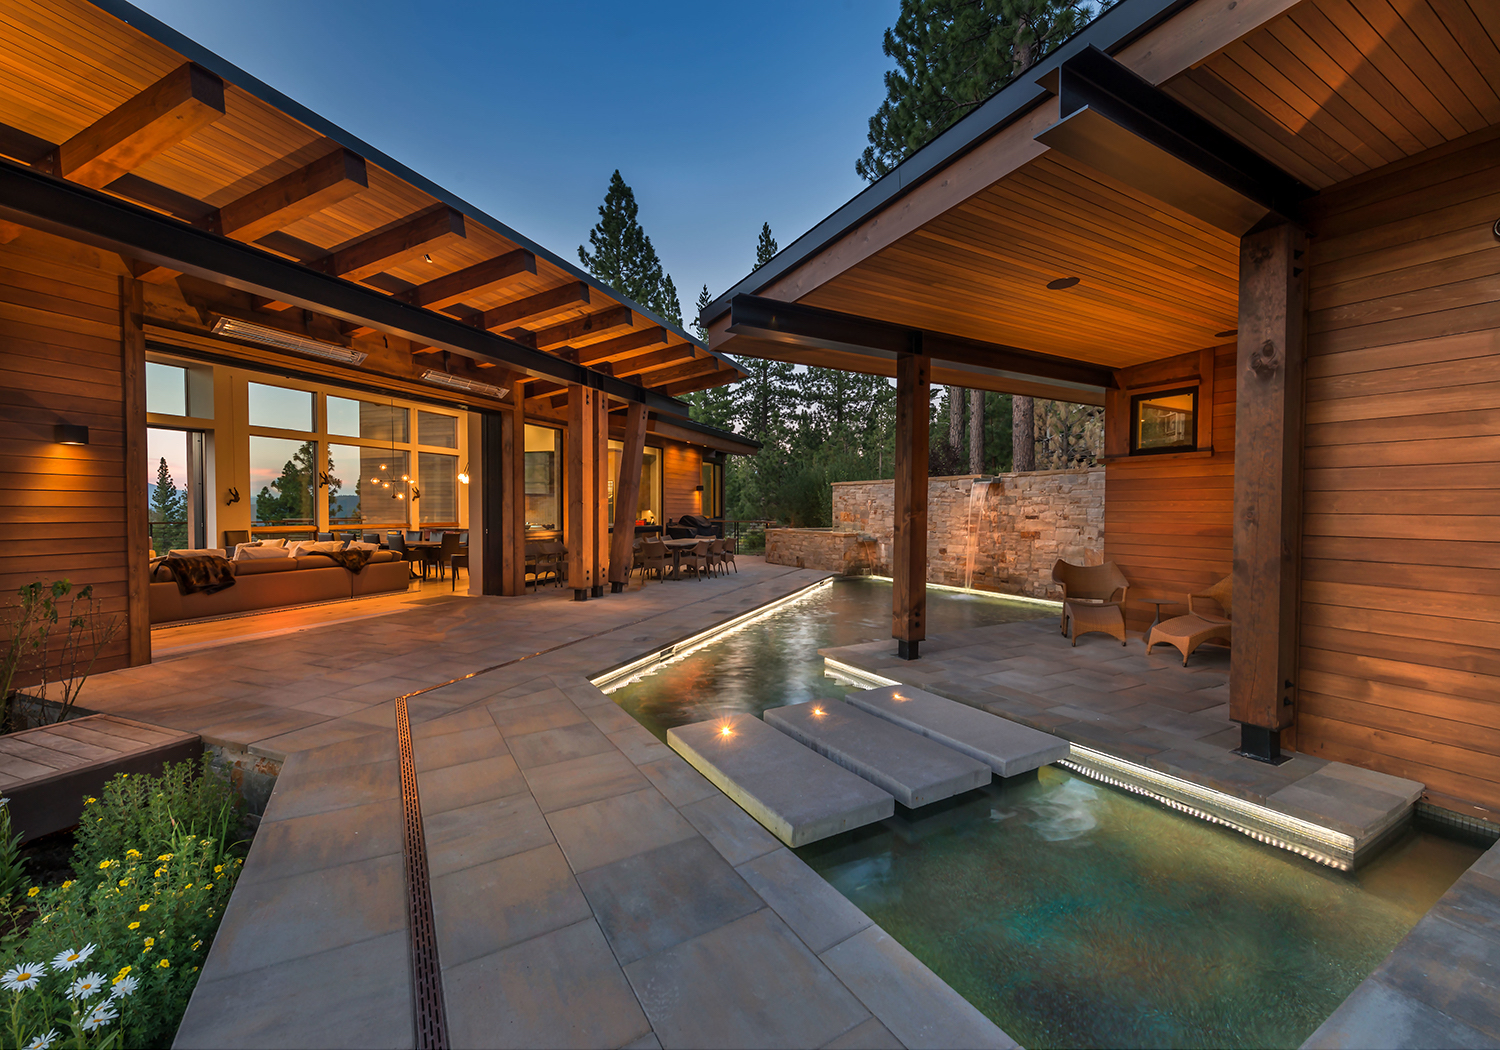 Lot 595_Exterior_Water Features_Concrete Pavers_Weiland Doors_Horizontal wood siding.jpg